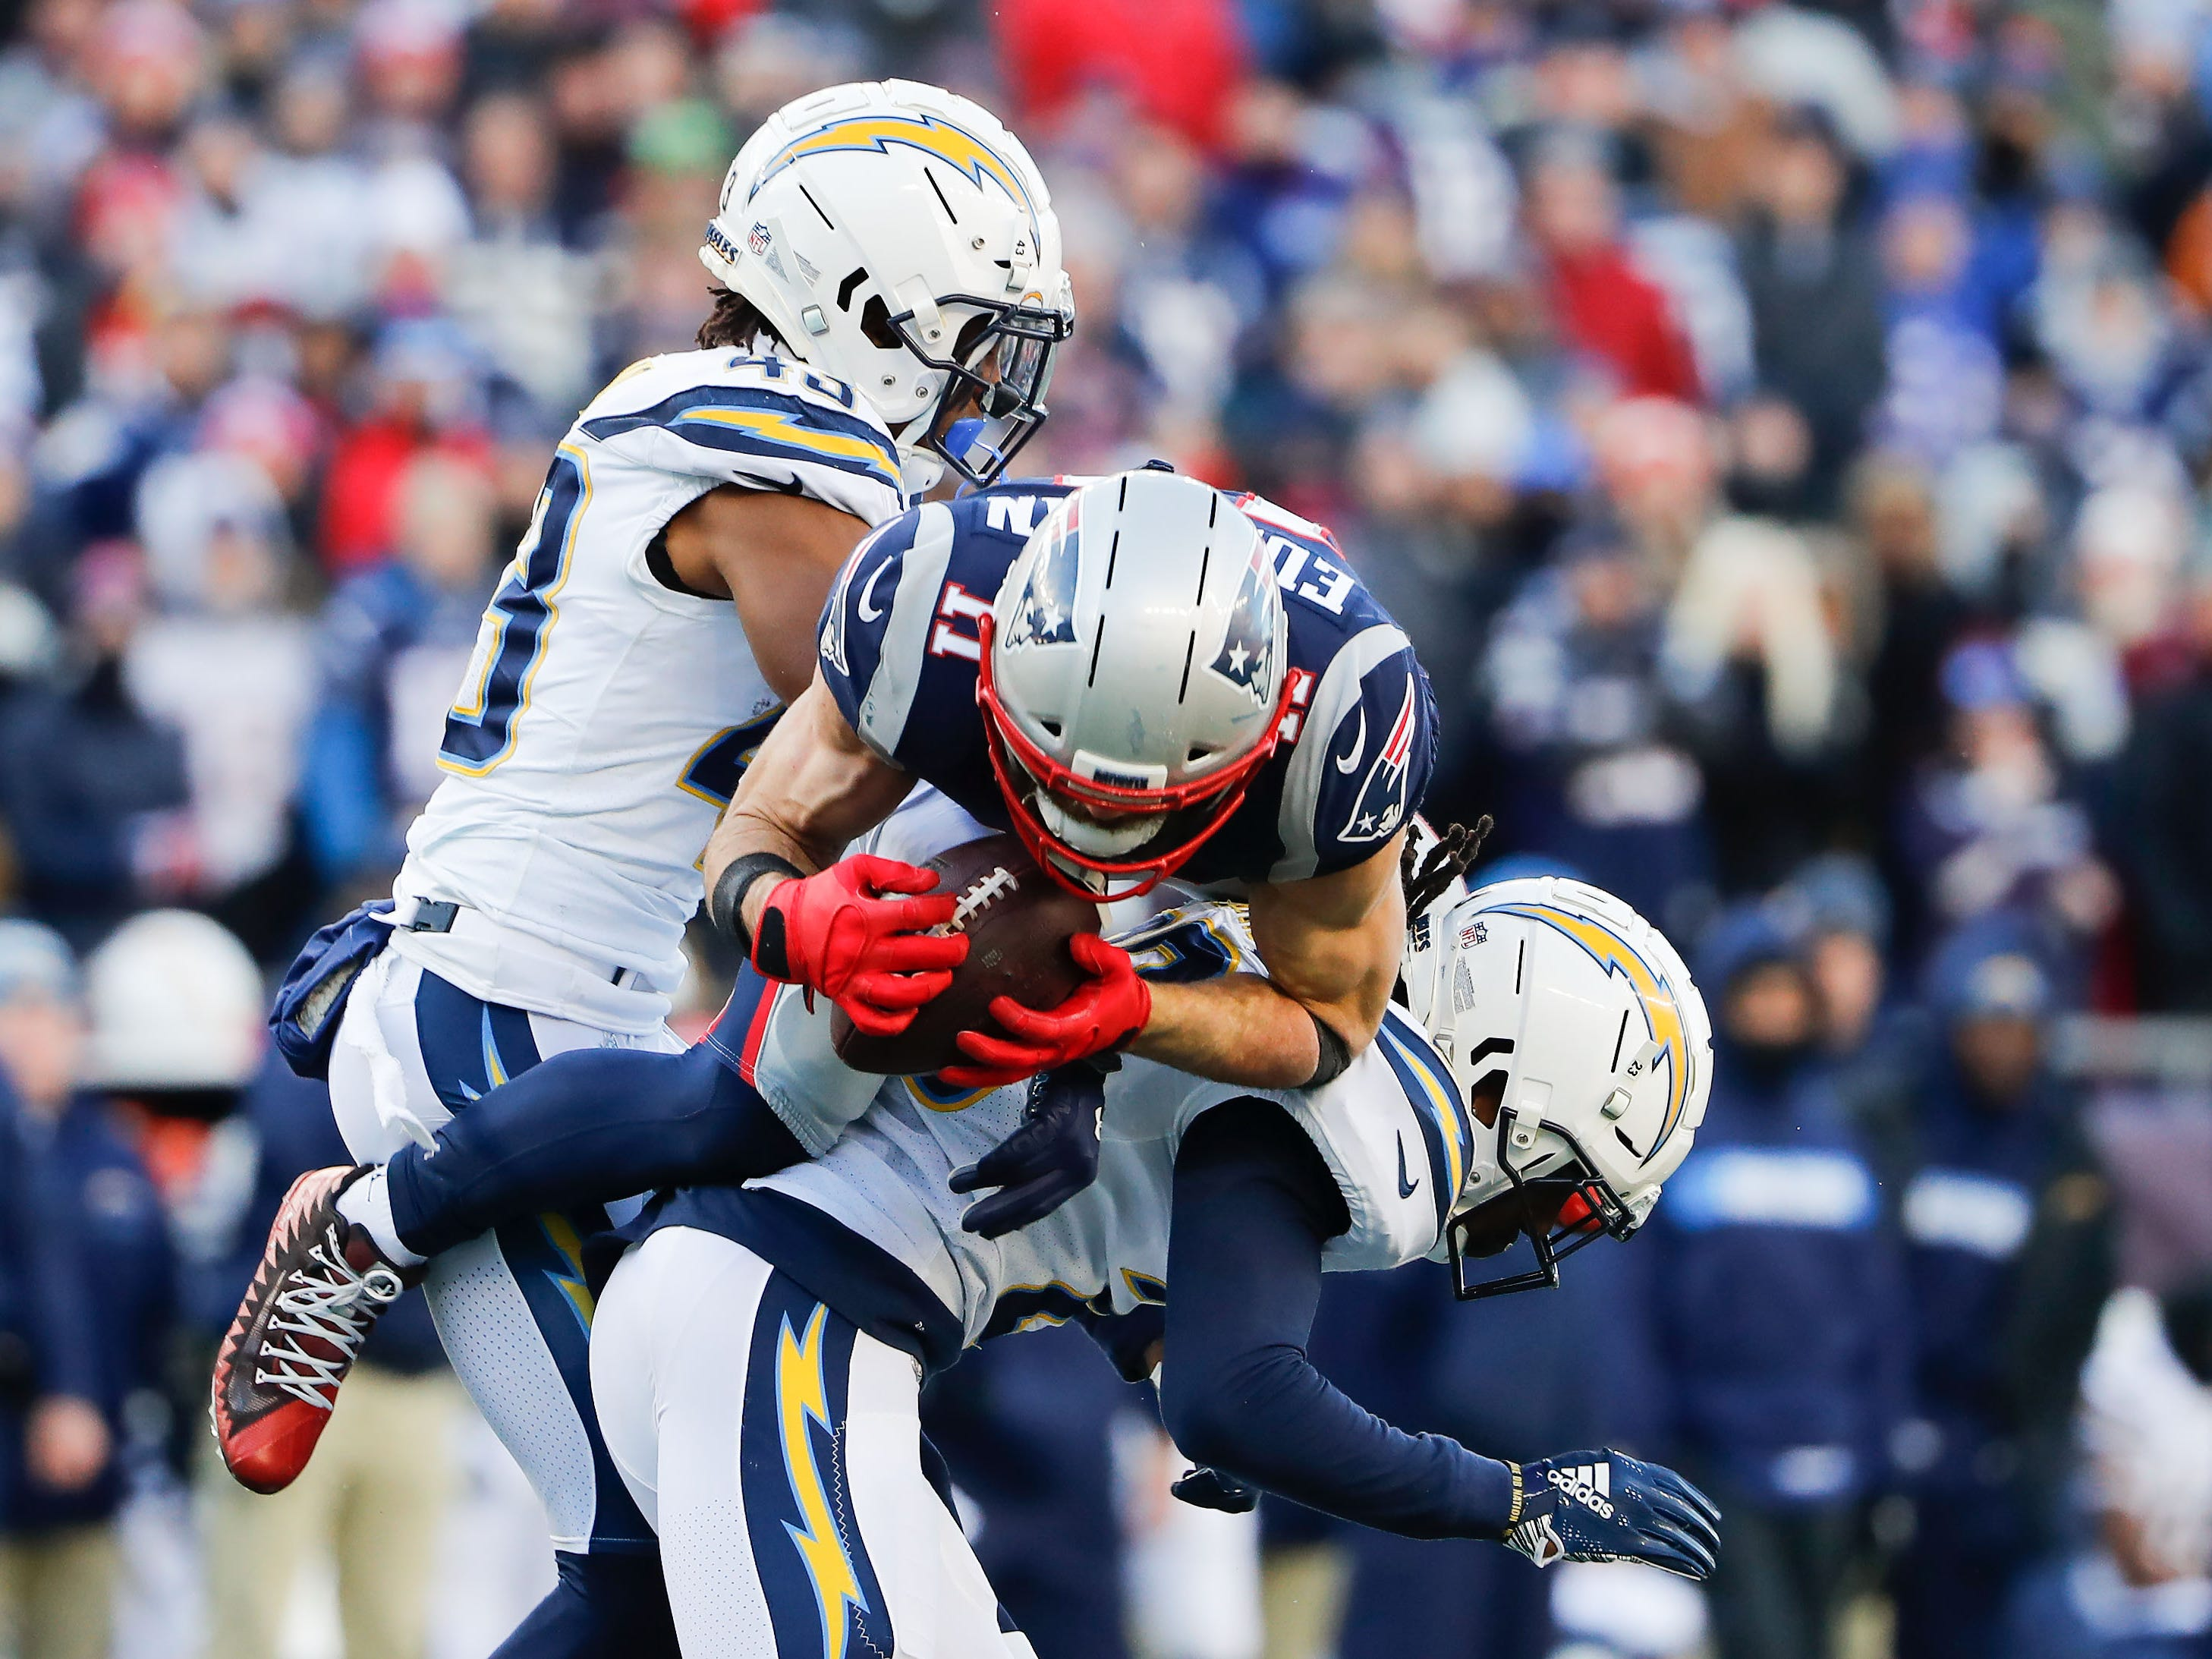 New England Patriots wide receiver Julian Edelman (11) dives over Los Angeles Chargers defensive back Rayshawn Jenkins (23) during the second quarter in an AFC Divisional playoff football game at Gillette Stadium.